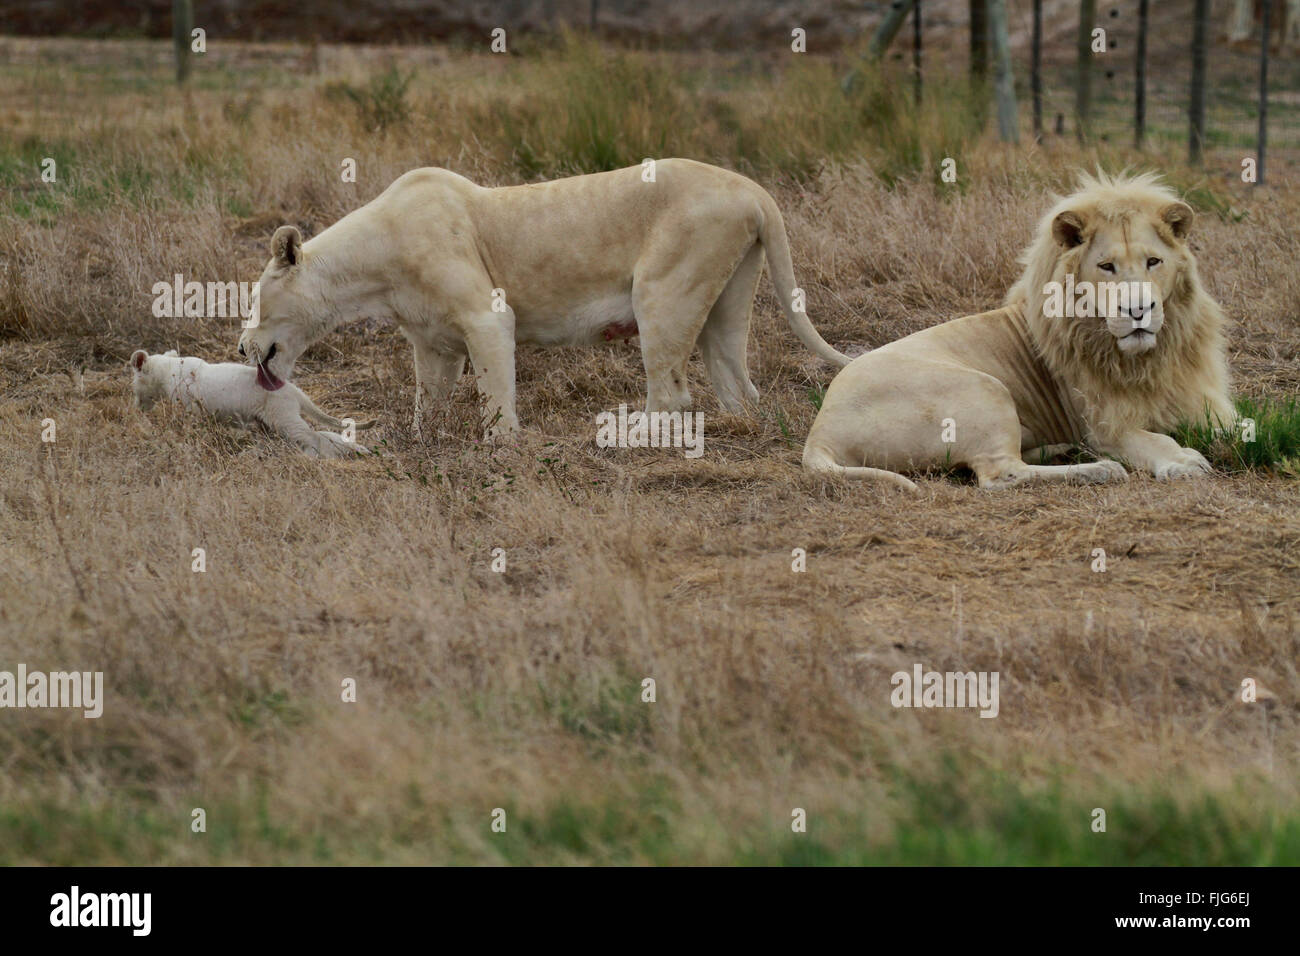 White Lion Family - Stock photo white lion family panthera leo krugeri in the drakenstein lion park klapmuts cape winelands south africa